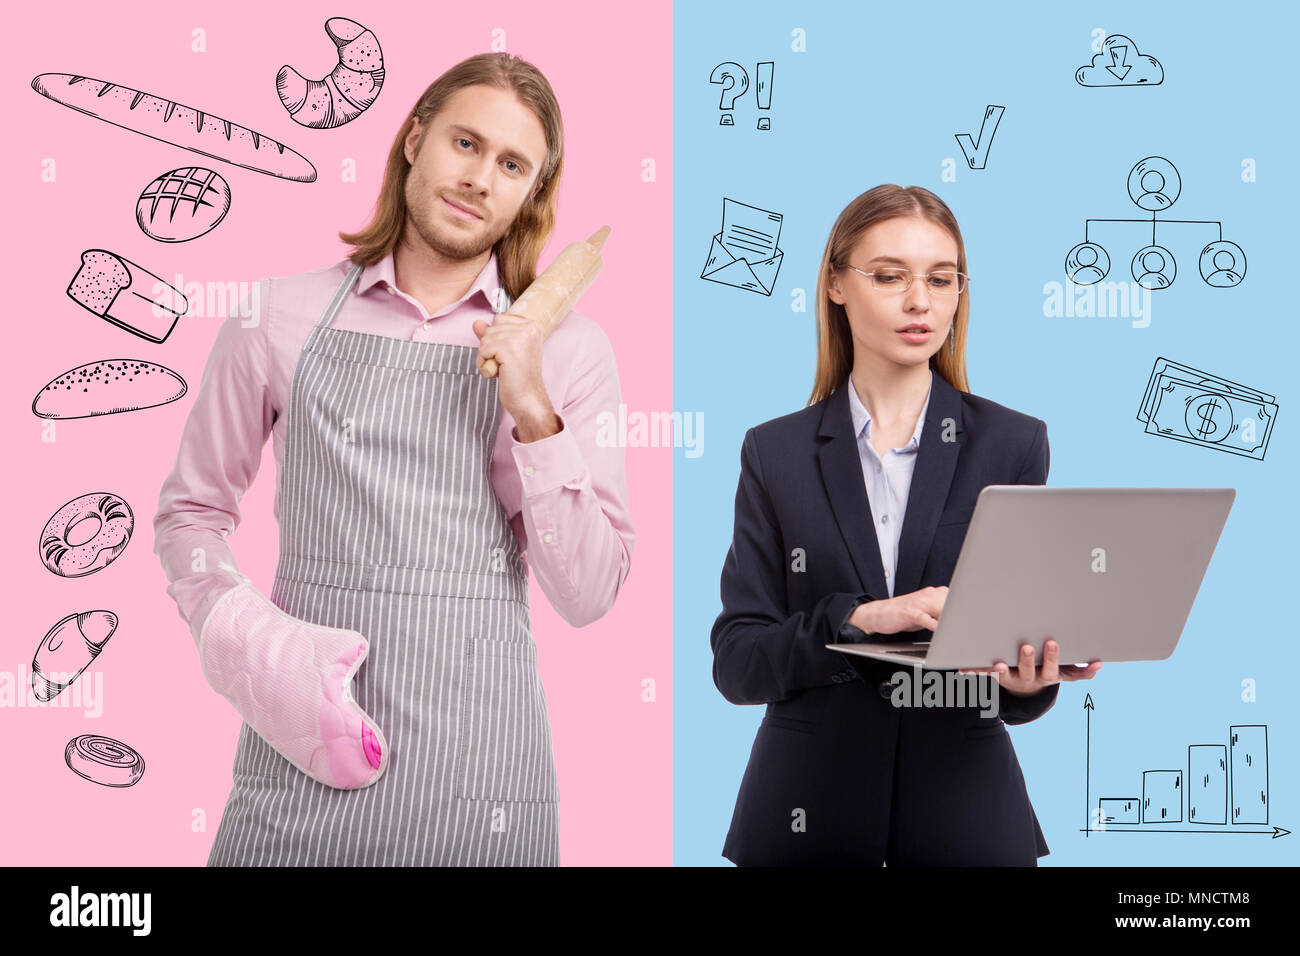 Waist up of ambitious woman and housewife man - Stock Image